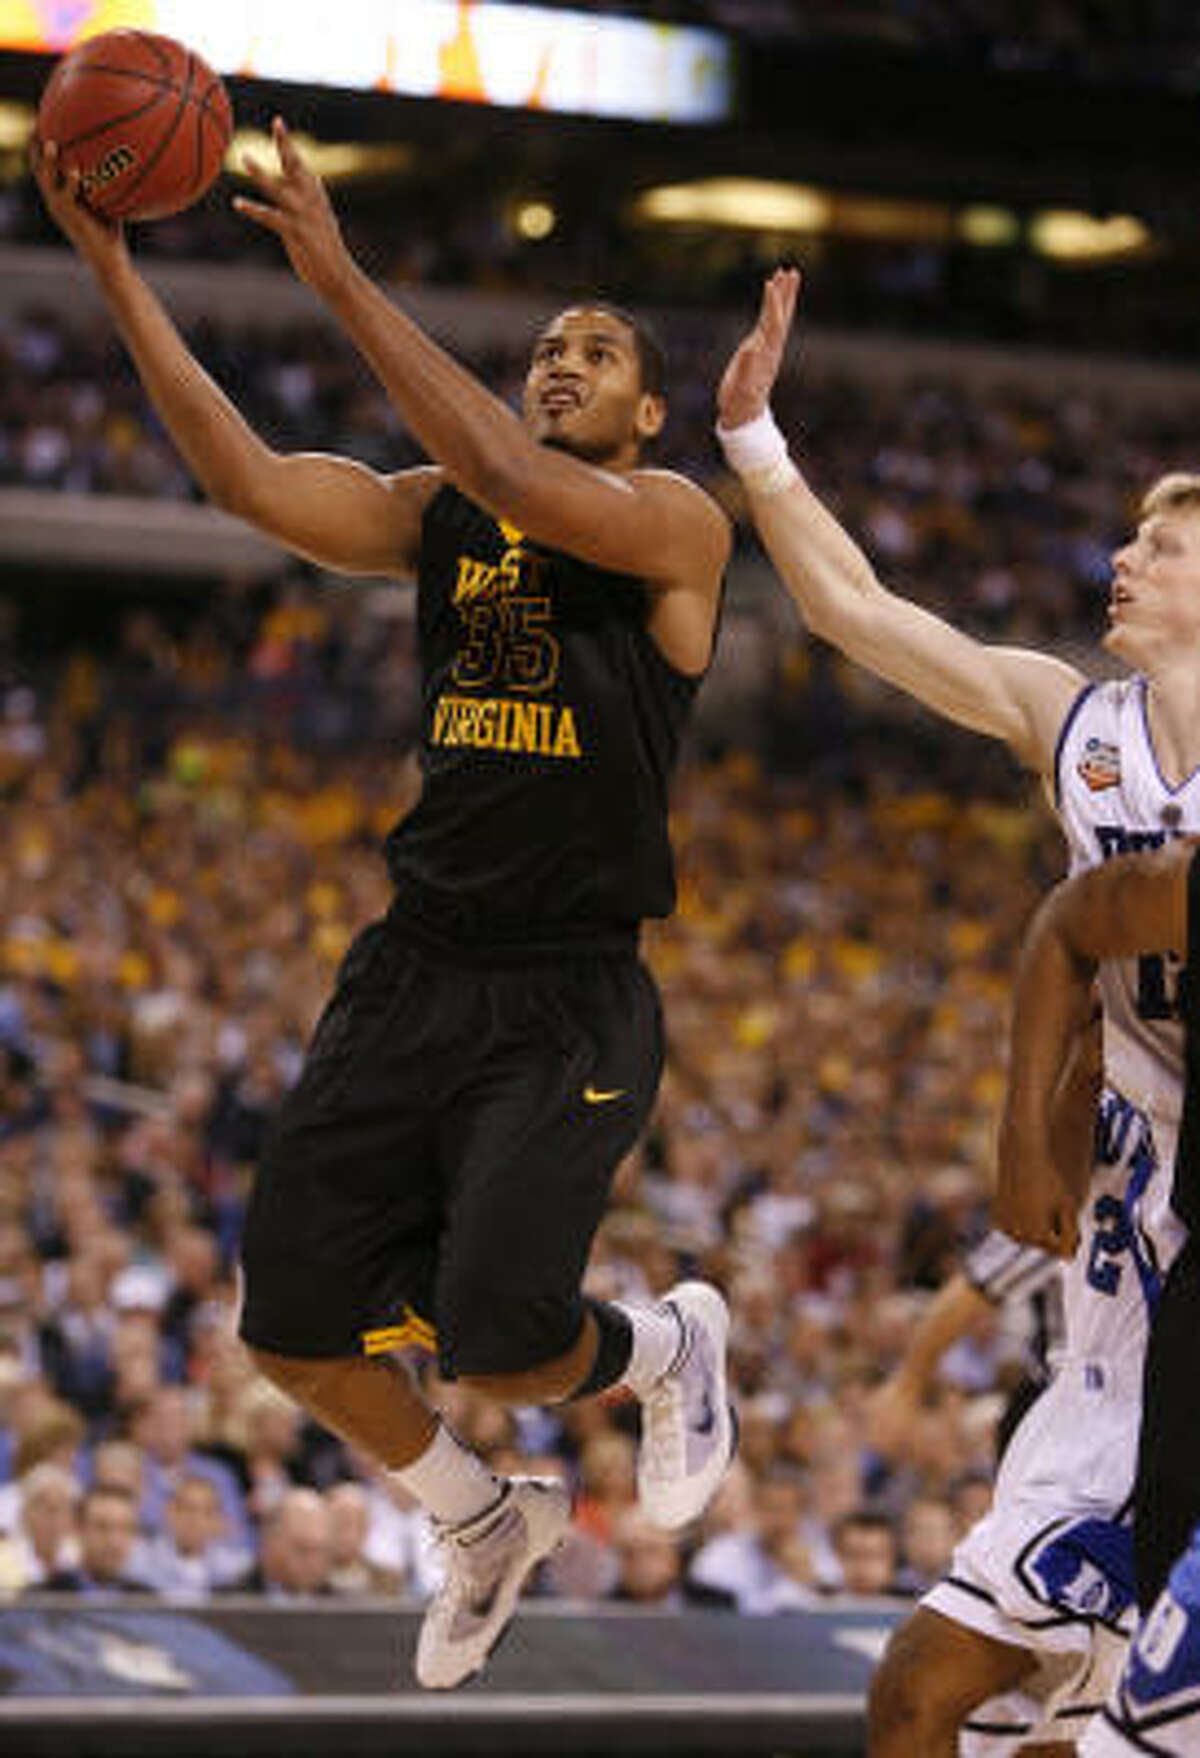 West Virginia forward Wellington Smith drives to the basket past Duke forward Kyle Singler.